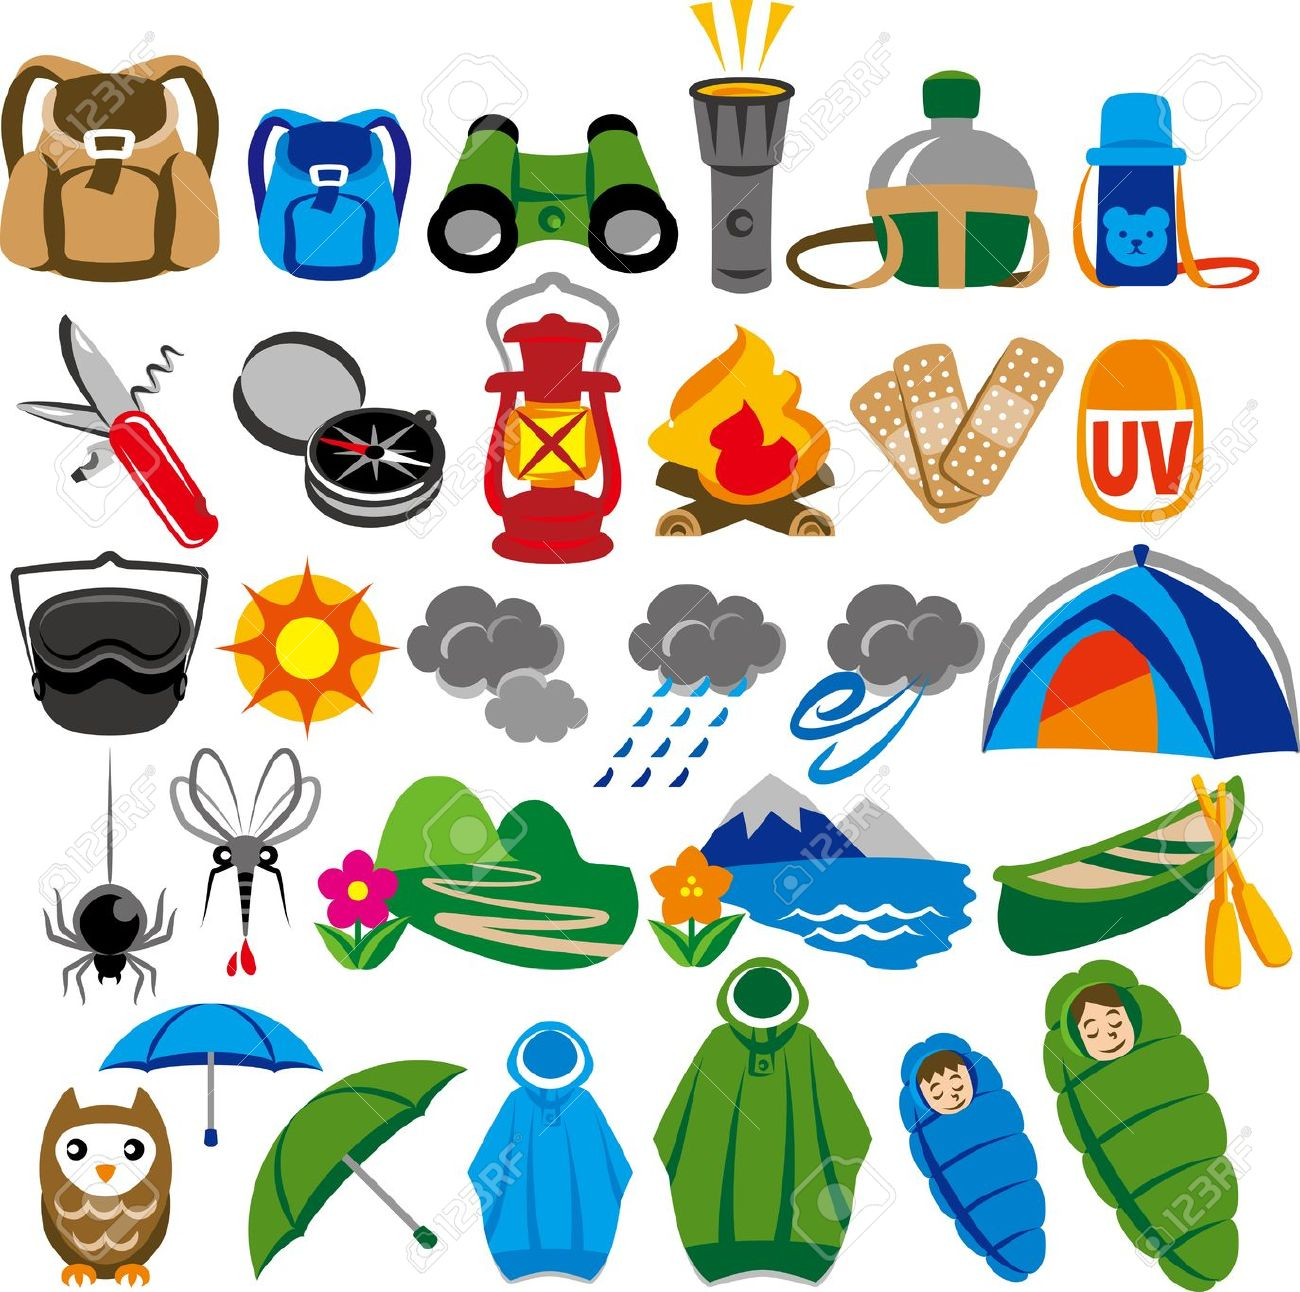 Camping gear clipart.